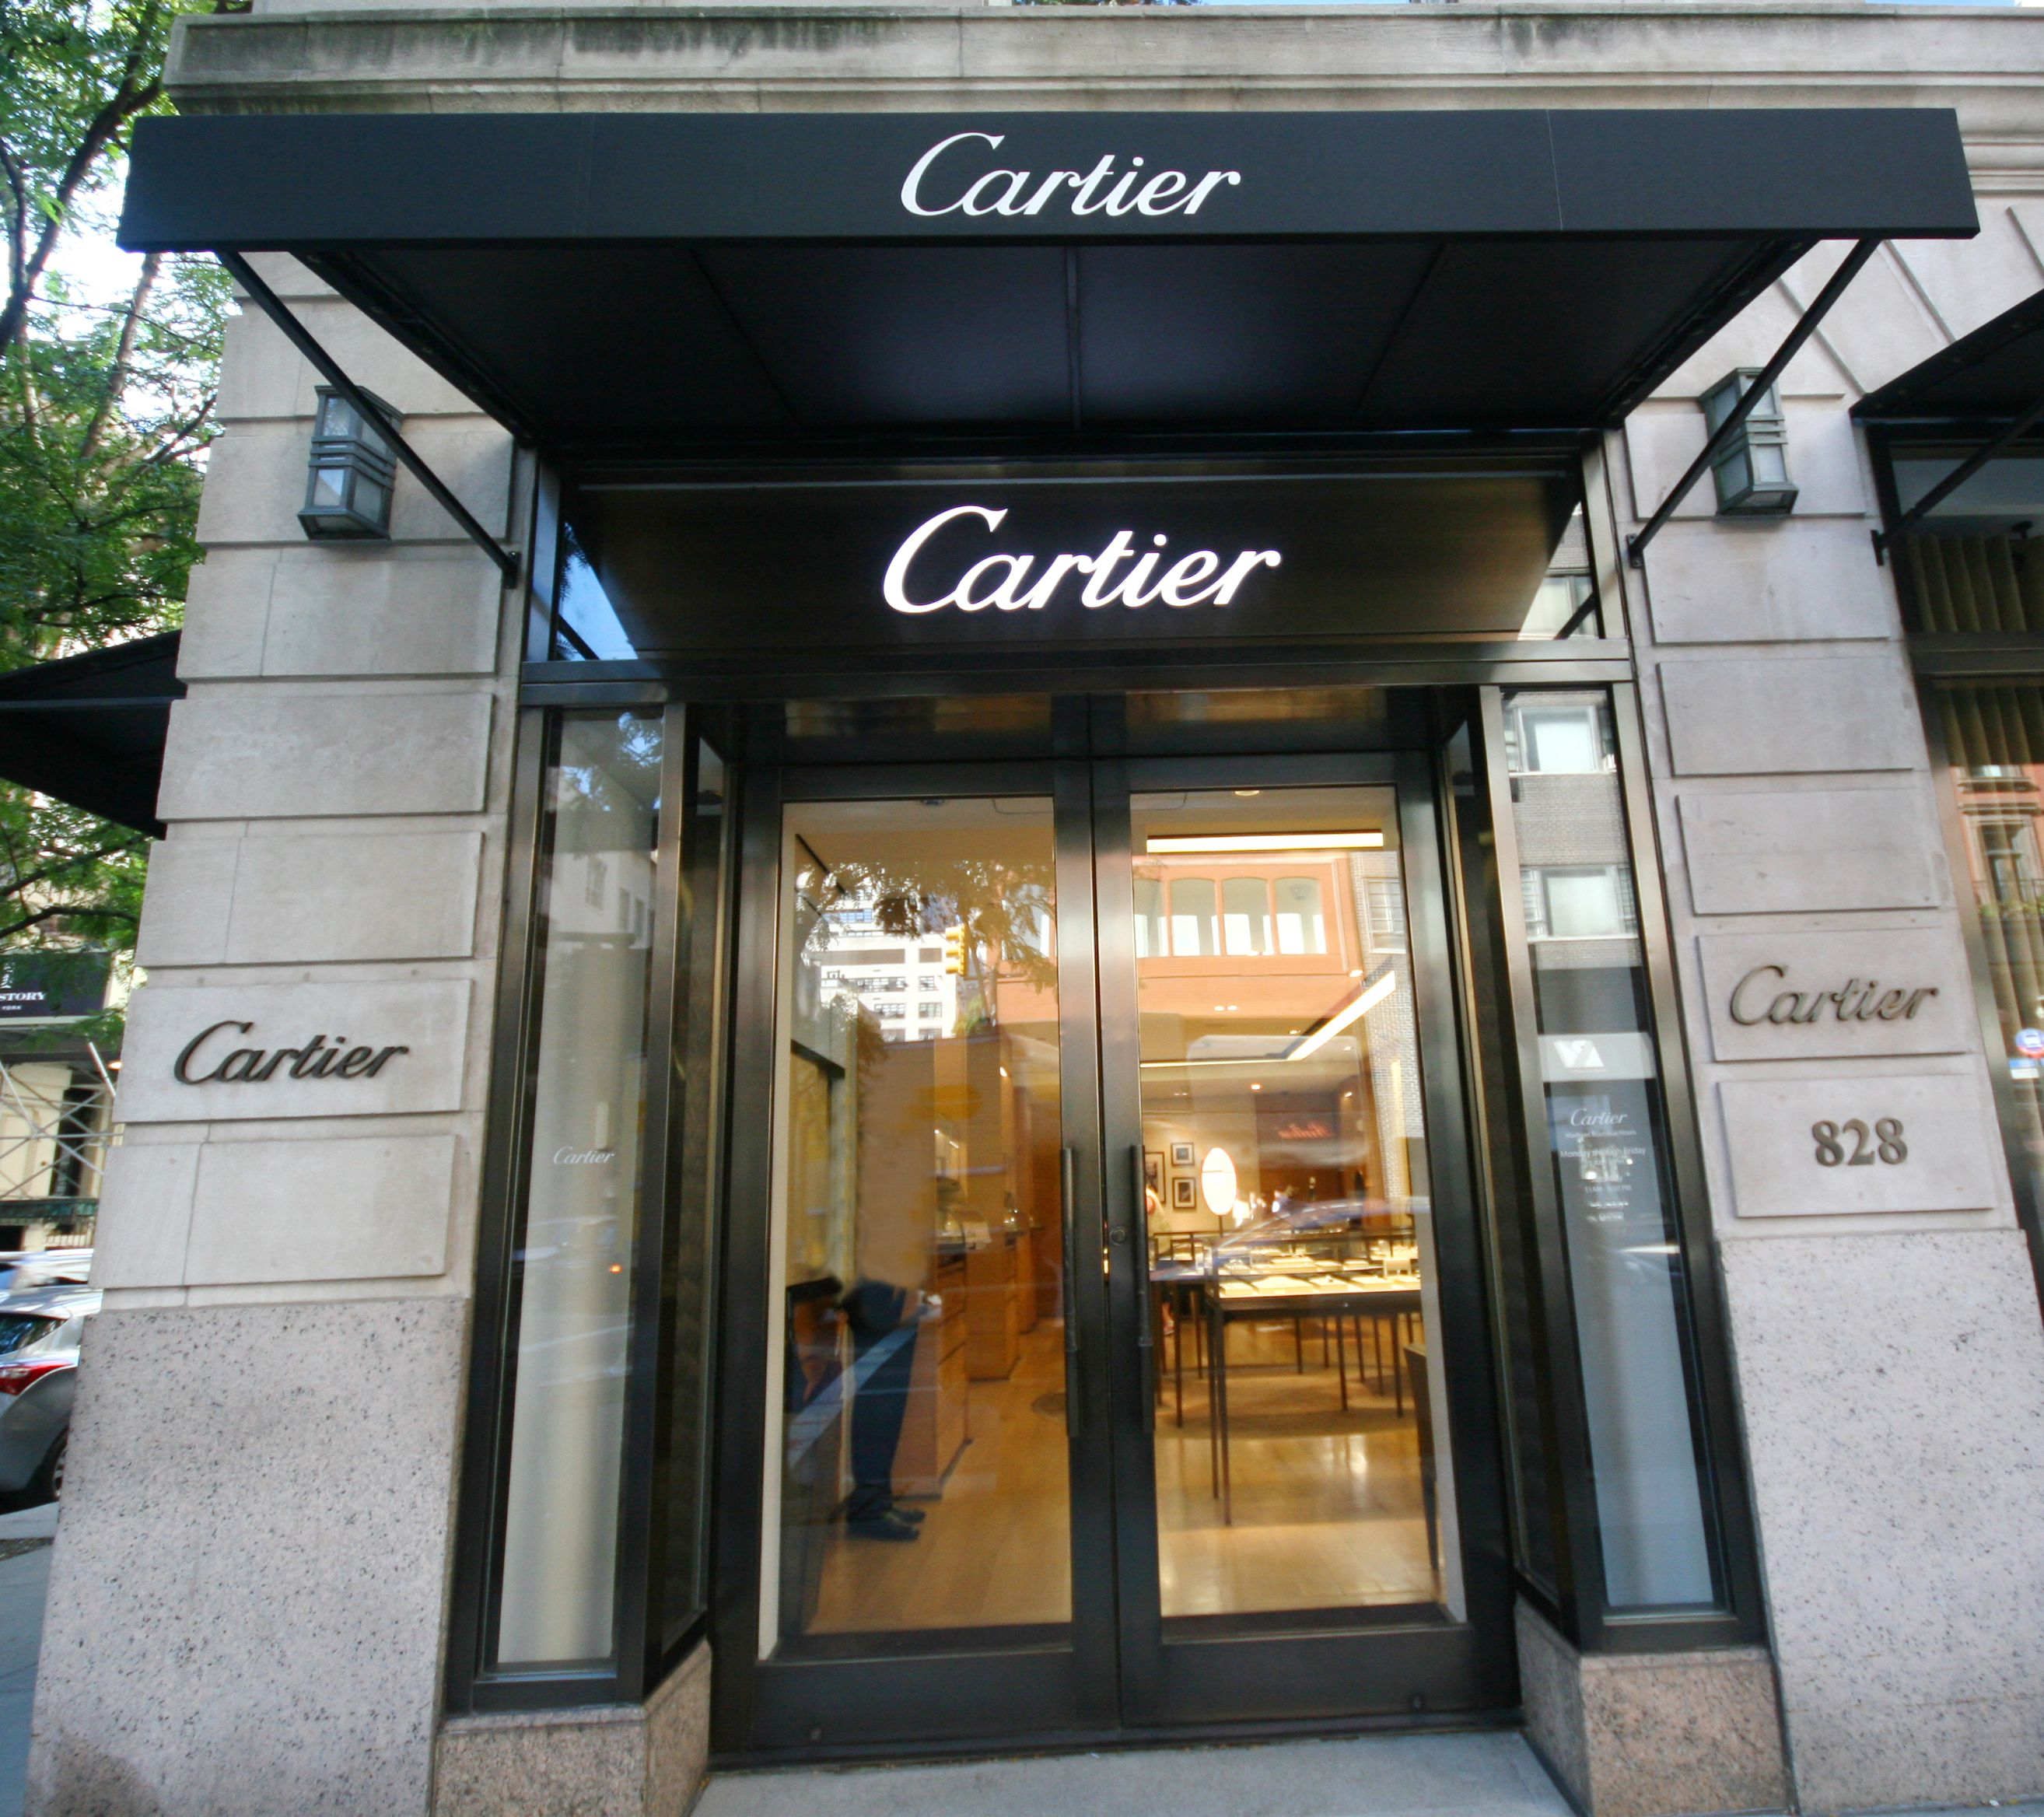 New Awnings Look For Cartiers On 69th Street And Madison Avenue NYC